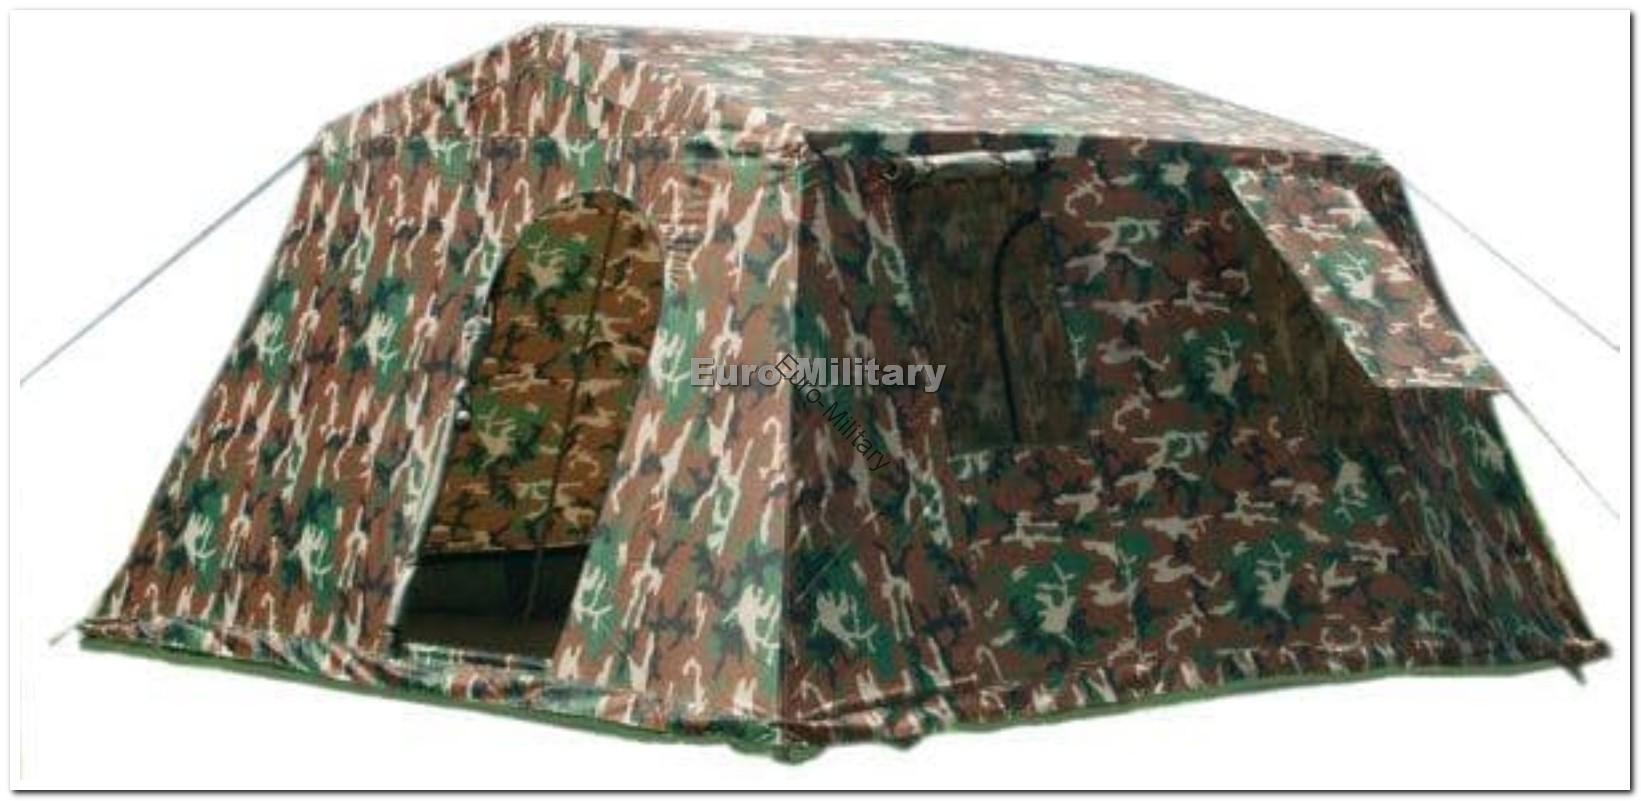 Military Army Outdoor Large BaseC& Tent Shelter 6 Person - Woodland & Tents u0026 Shelters | Military Army Outdoor Large BaseCamp Tent ...